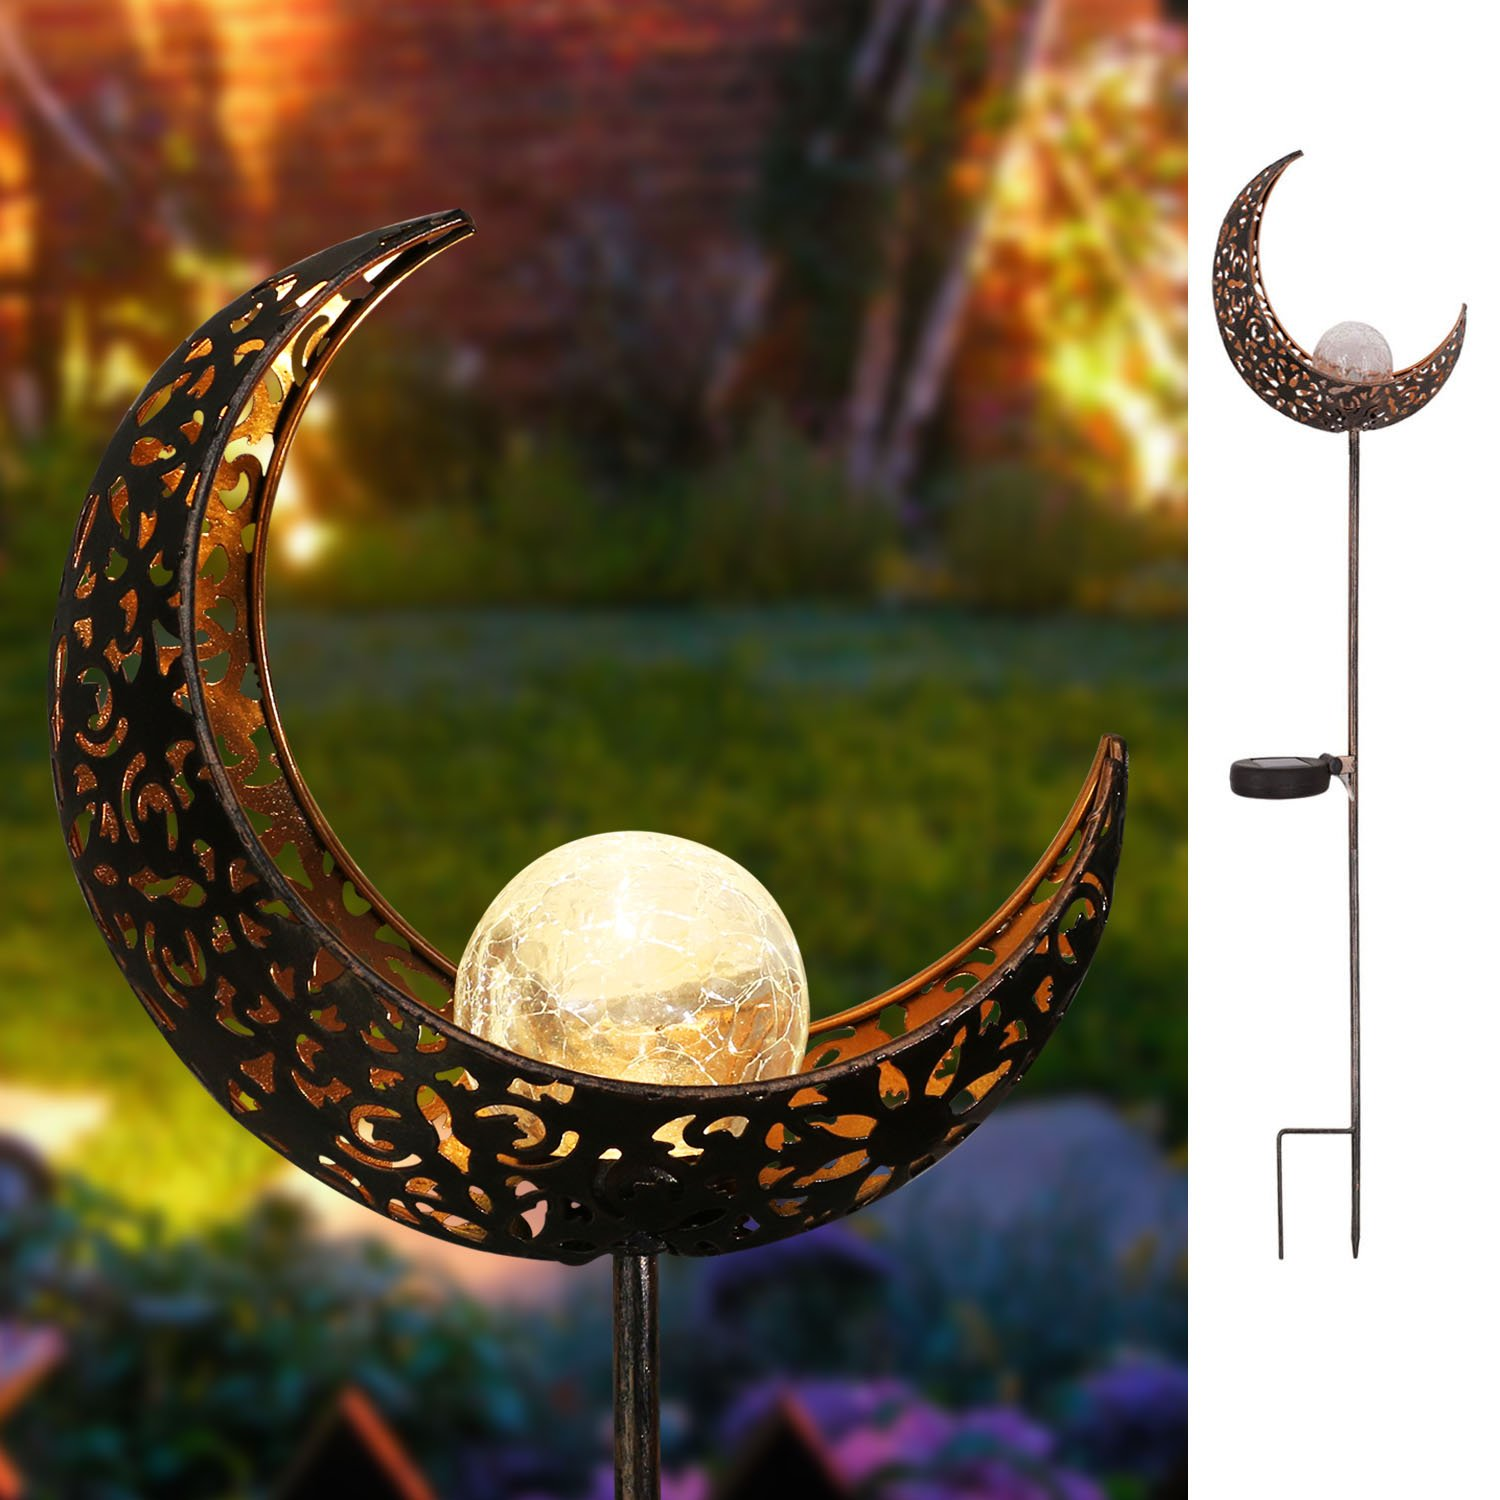 Awe Inspiring Homeimpro Garden Solar Lights Pathway Outdoor Moon Crackle Glass Globe Stake Metal Lights Waterproof Warm White Led For Lawn Patio Or Courtyard Download Free Architecture Designs Boapuretrmadebymaigaardcom